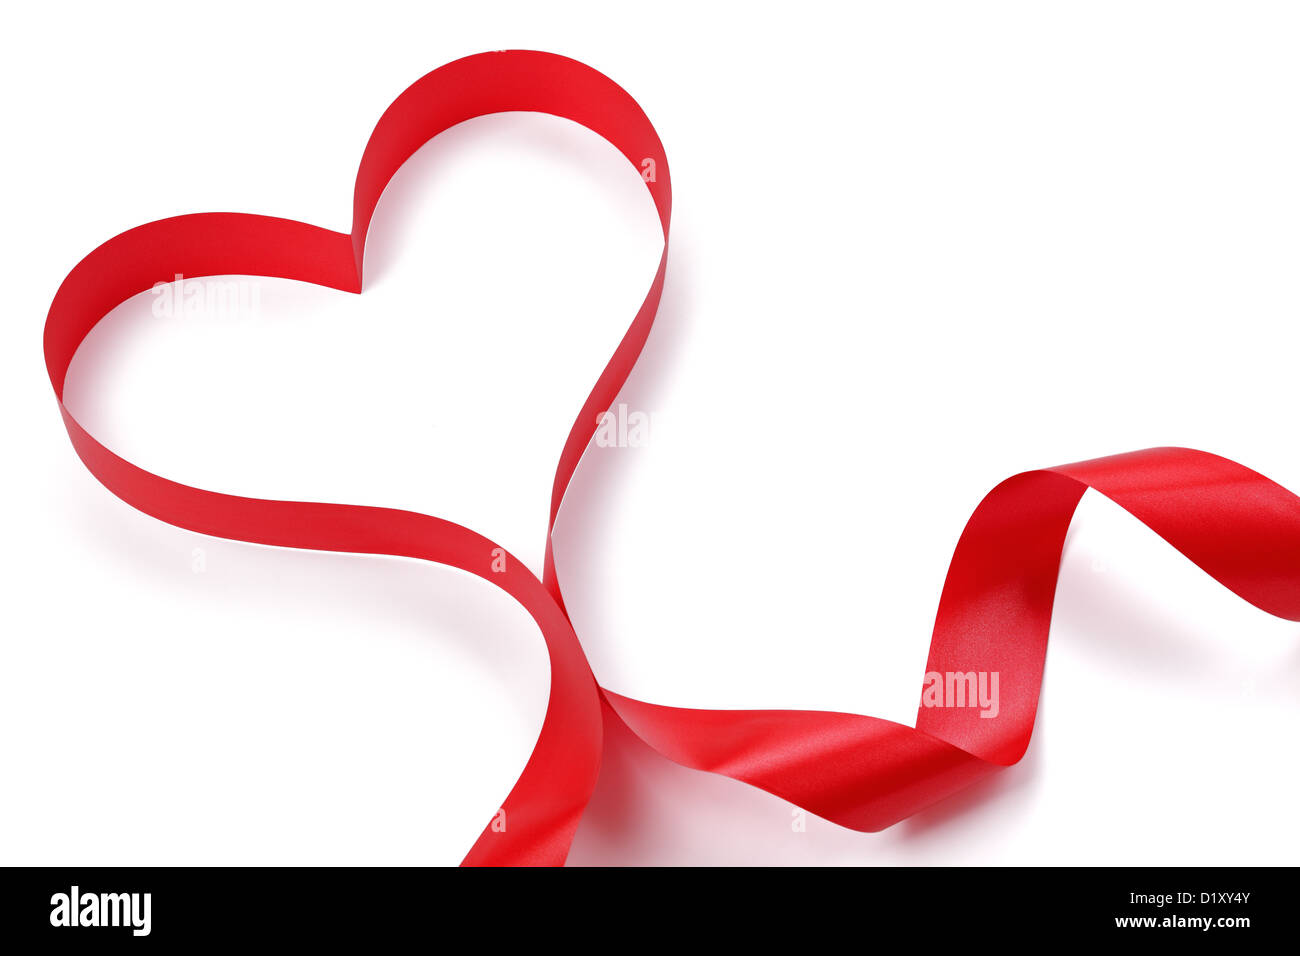 Ruban rouge en forme de coeur Photo Stock